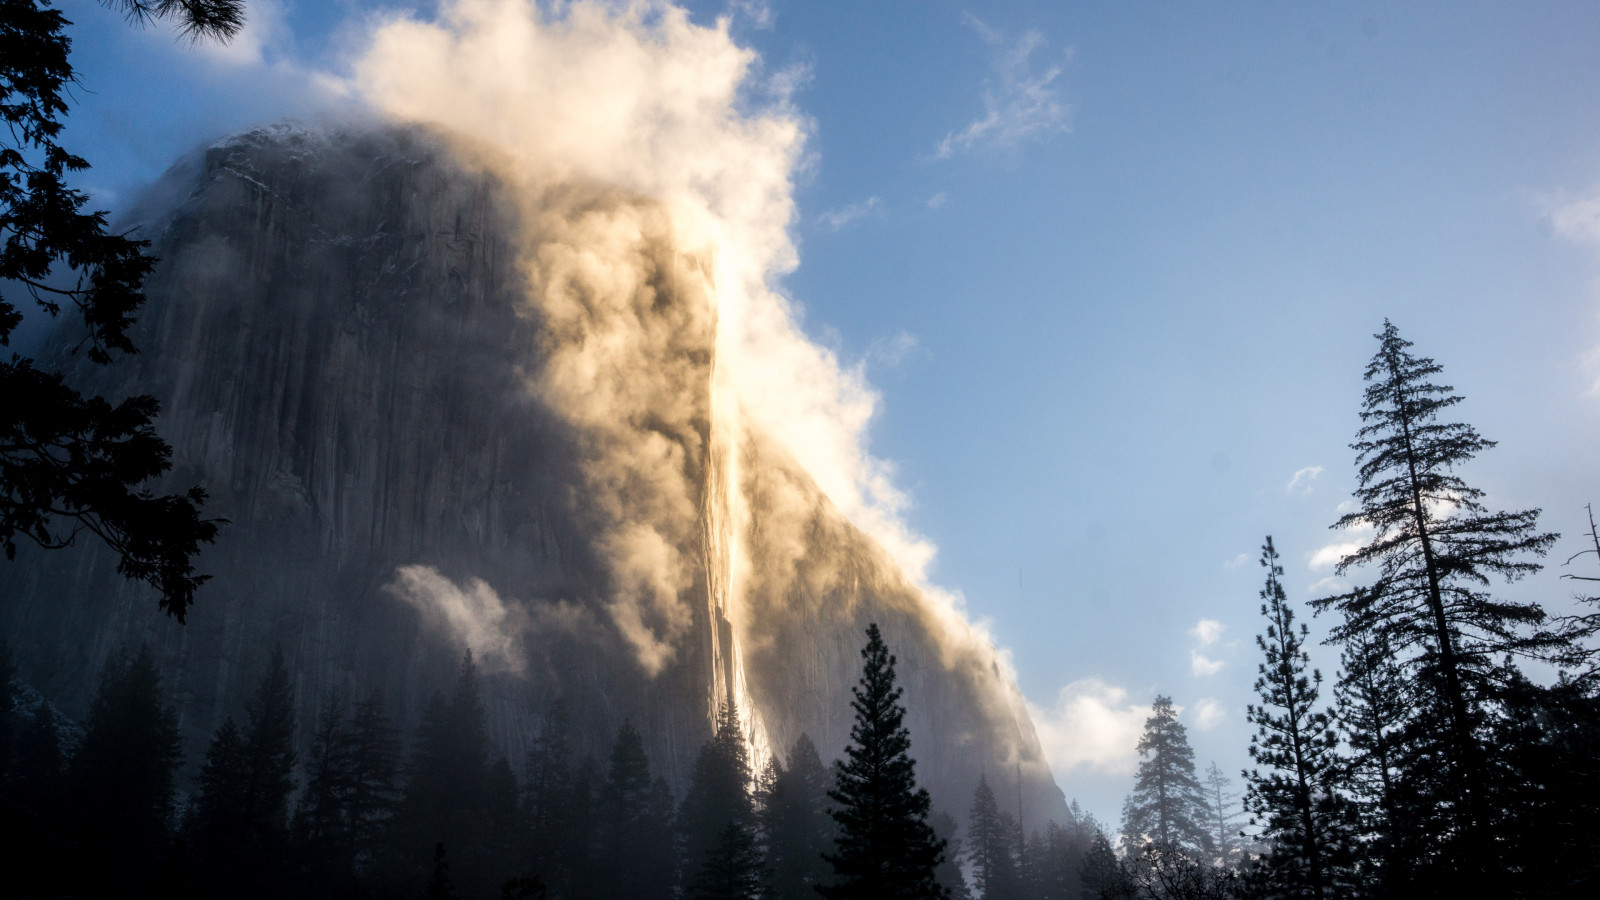 El Capitan, Yosemite wallpaper 1600x900